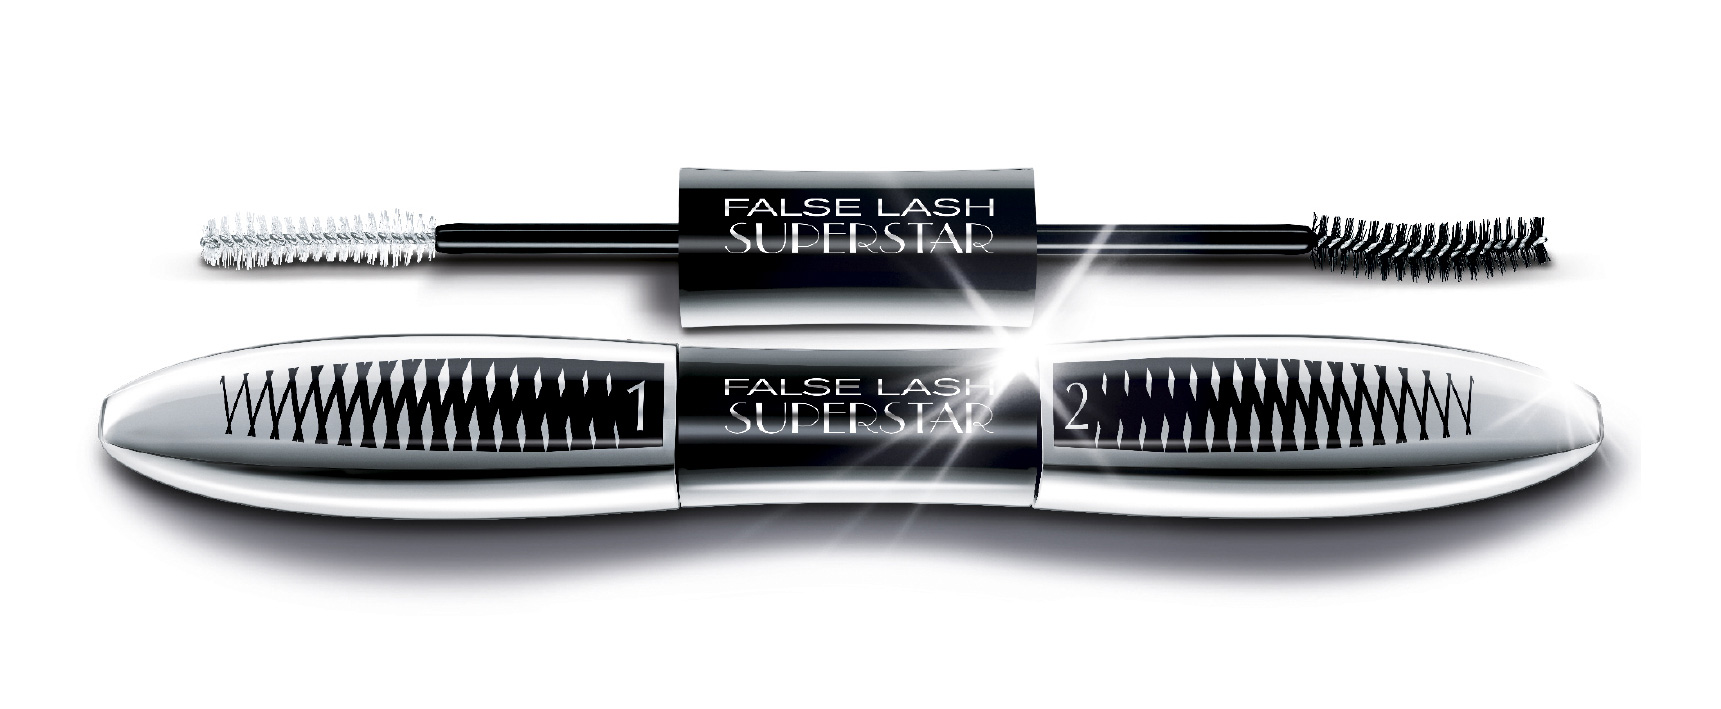 Loreal False Lash Superstar Mascara RRP $28.95